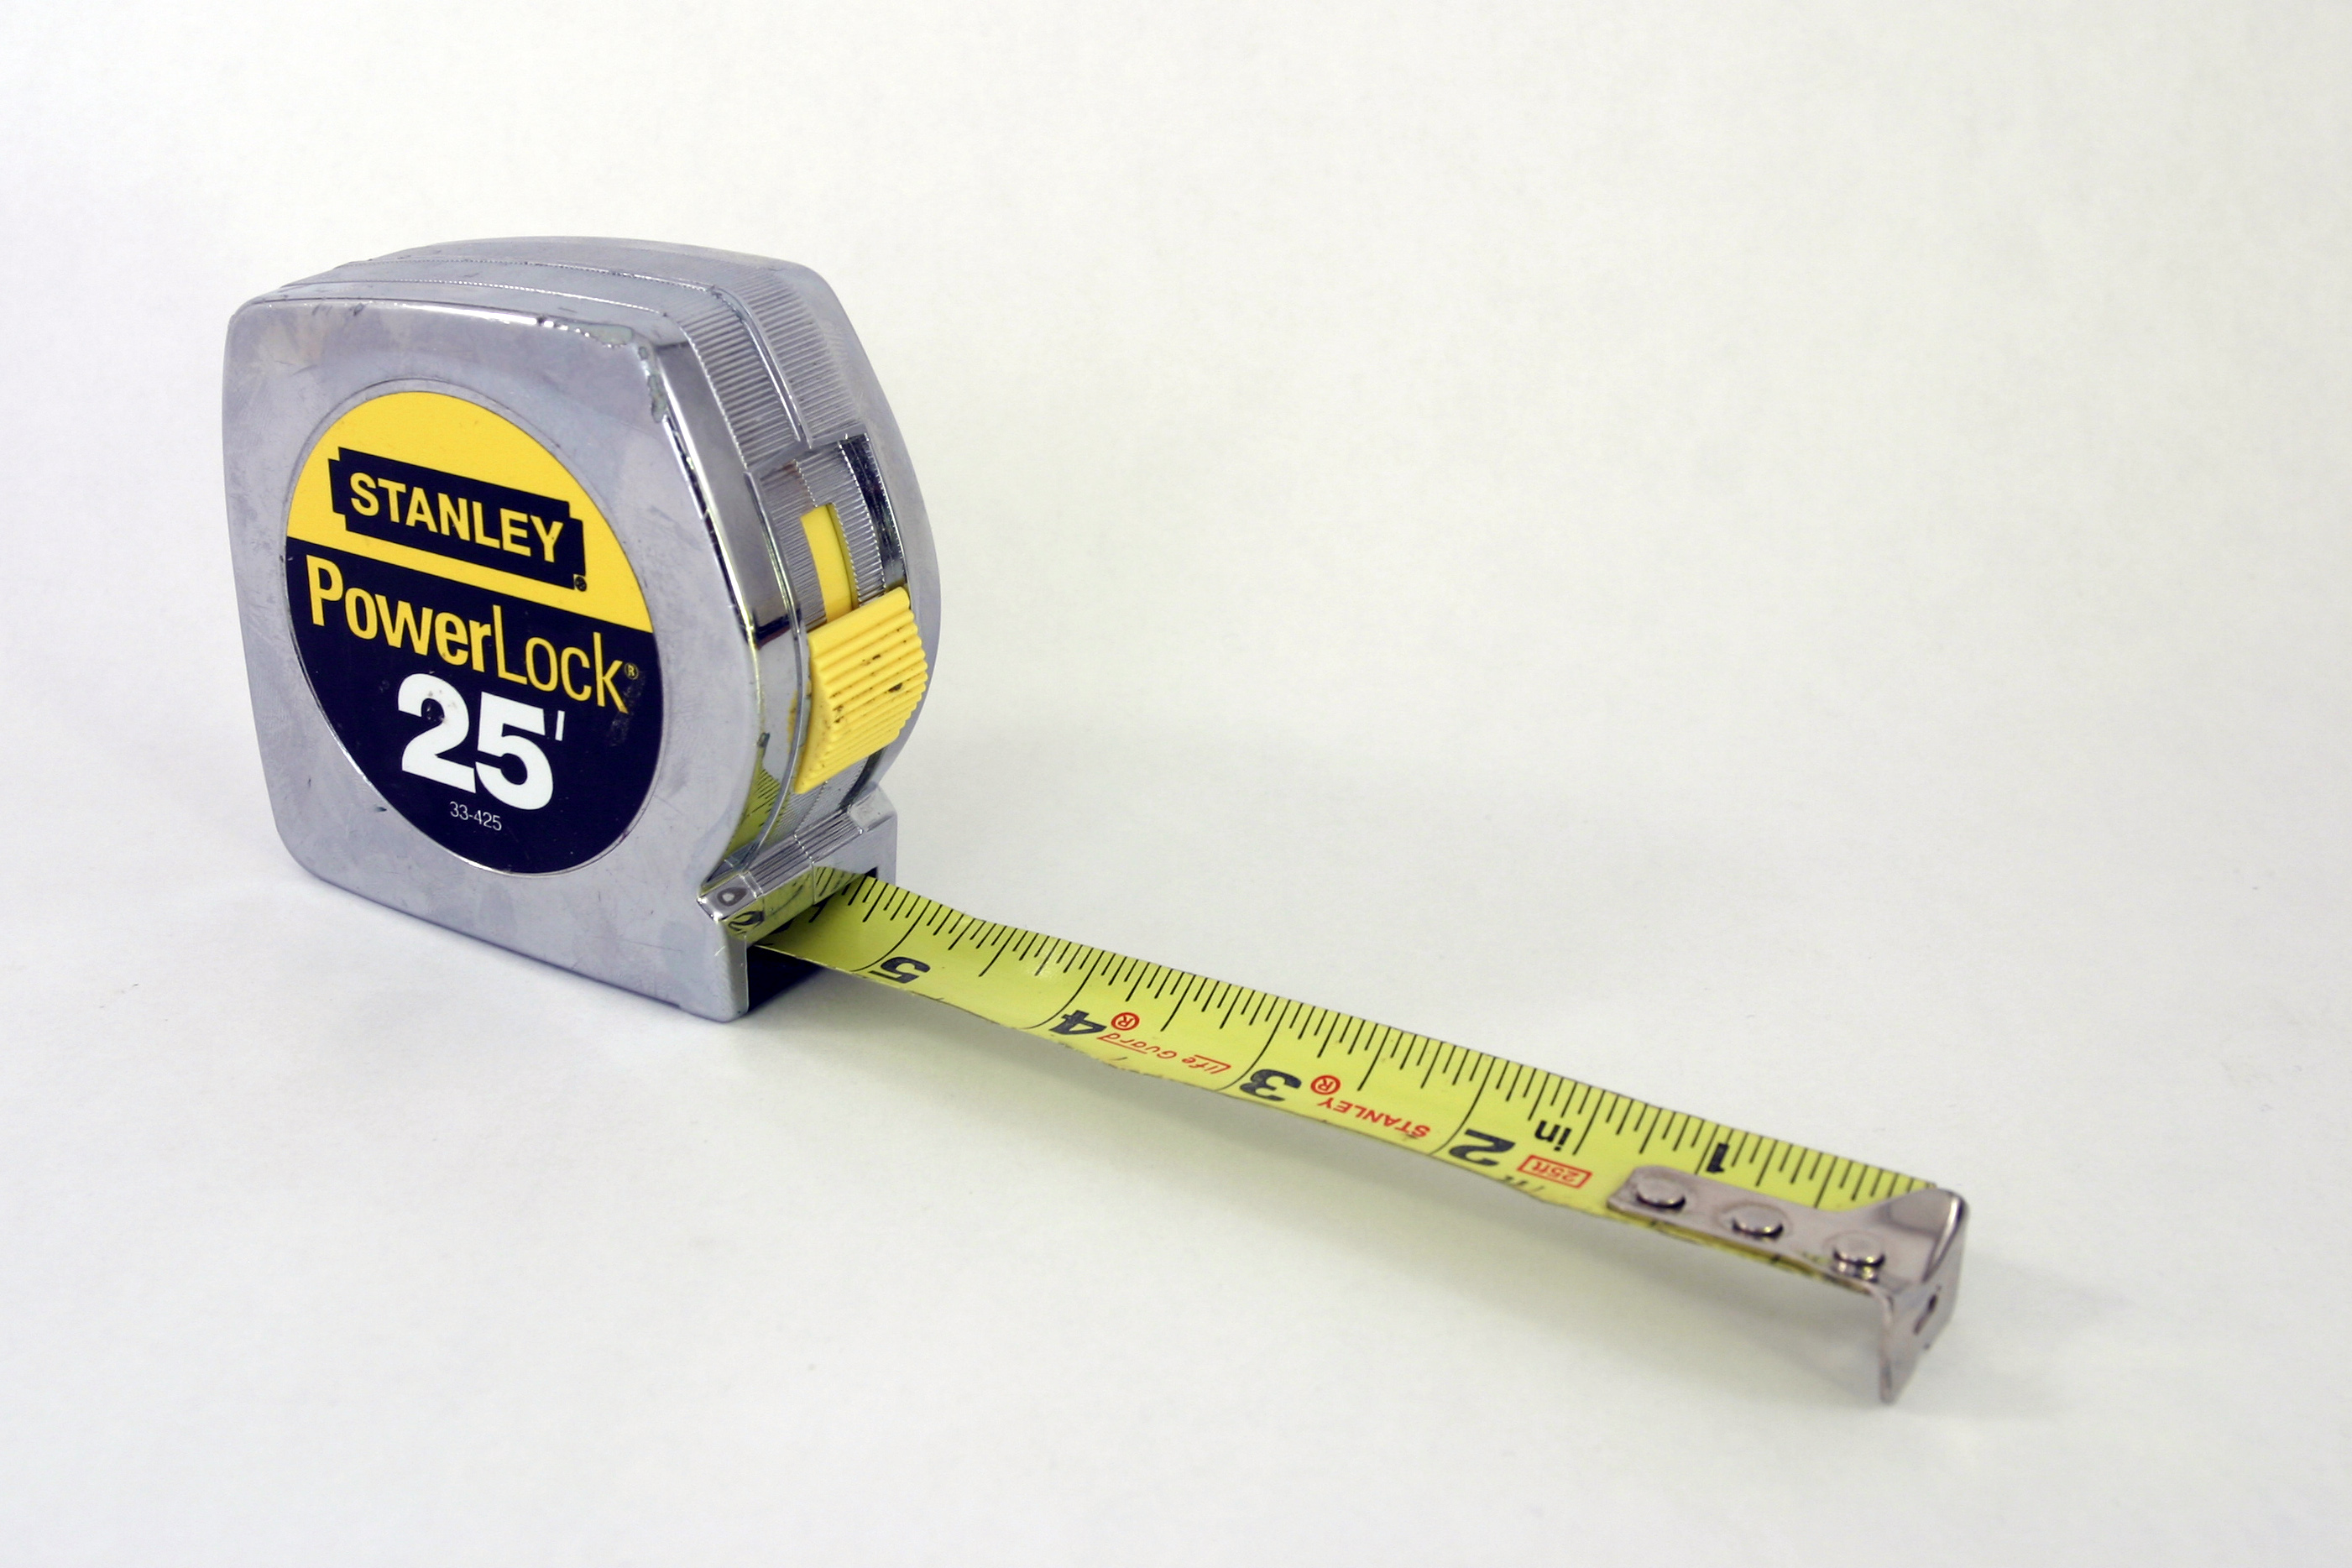 Stanley PowerLock tape measure